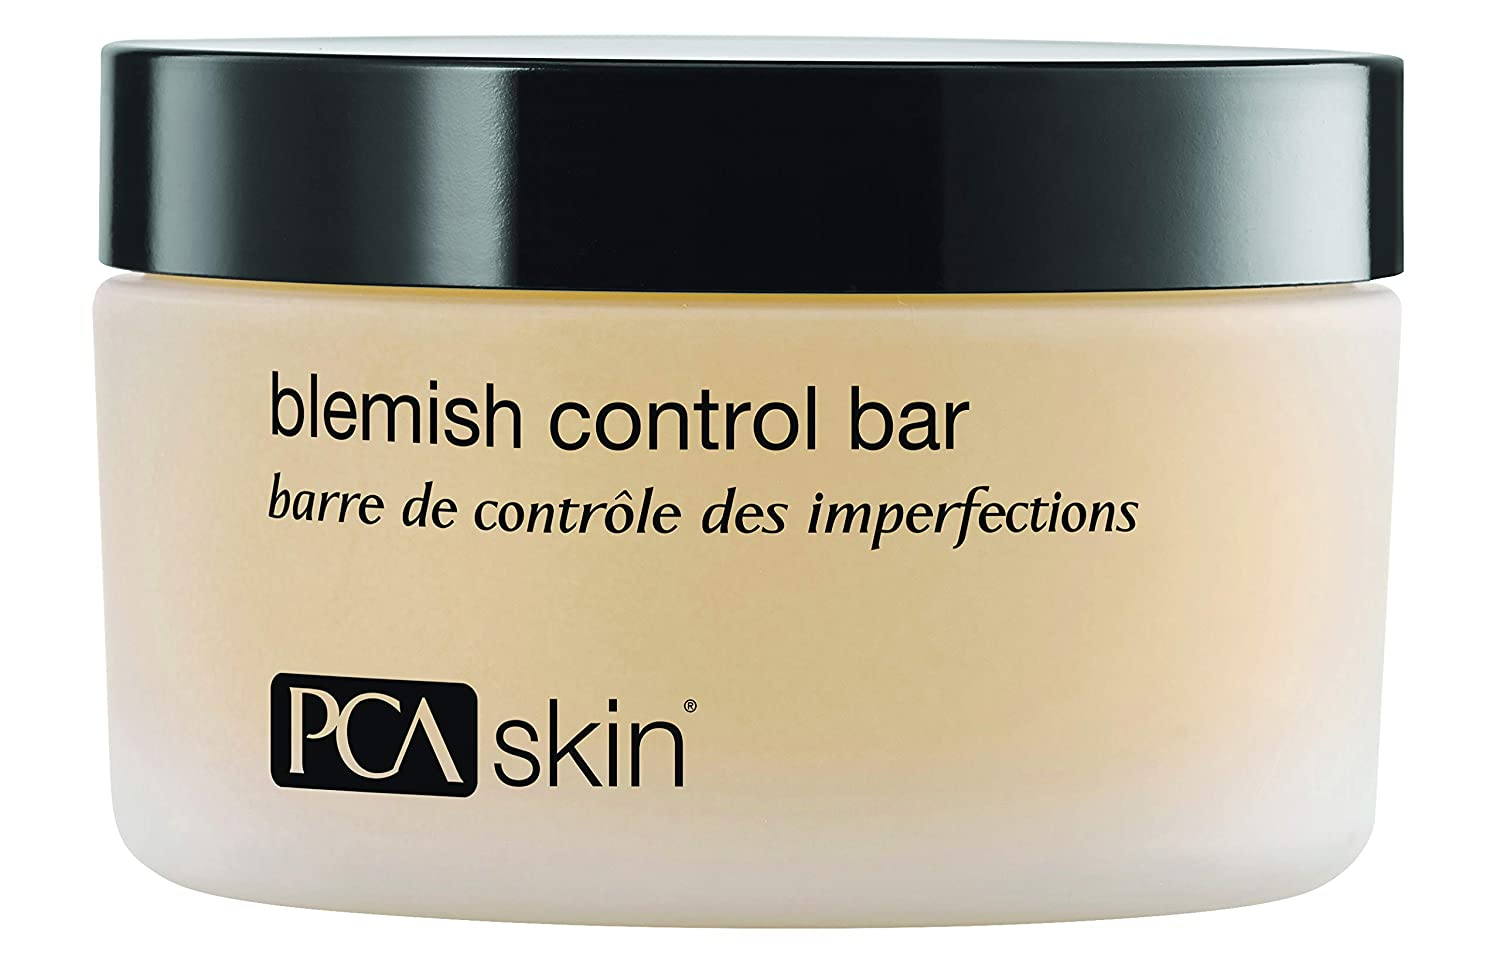 PCA SKIN Blemish Control Bar, Salicylic Acid Face & Body Treatment, 3.2 Fl Oz